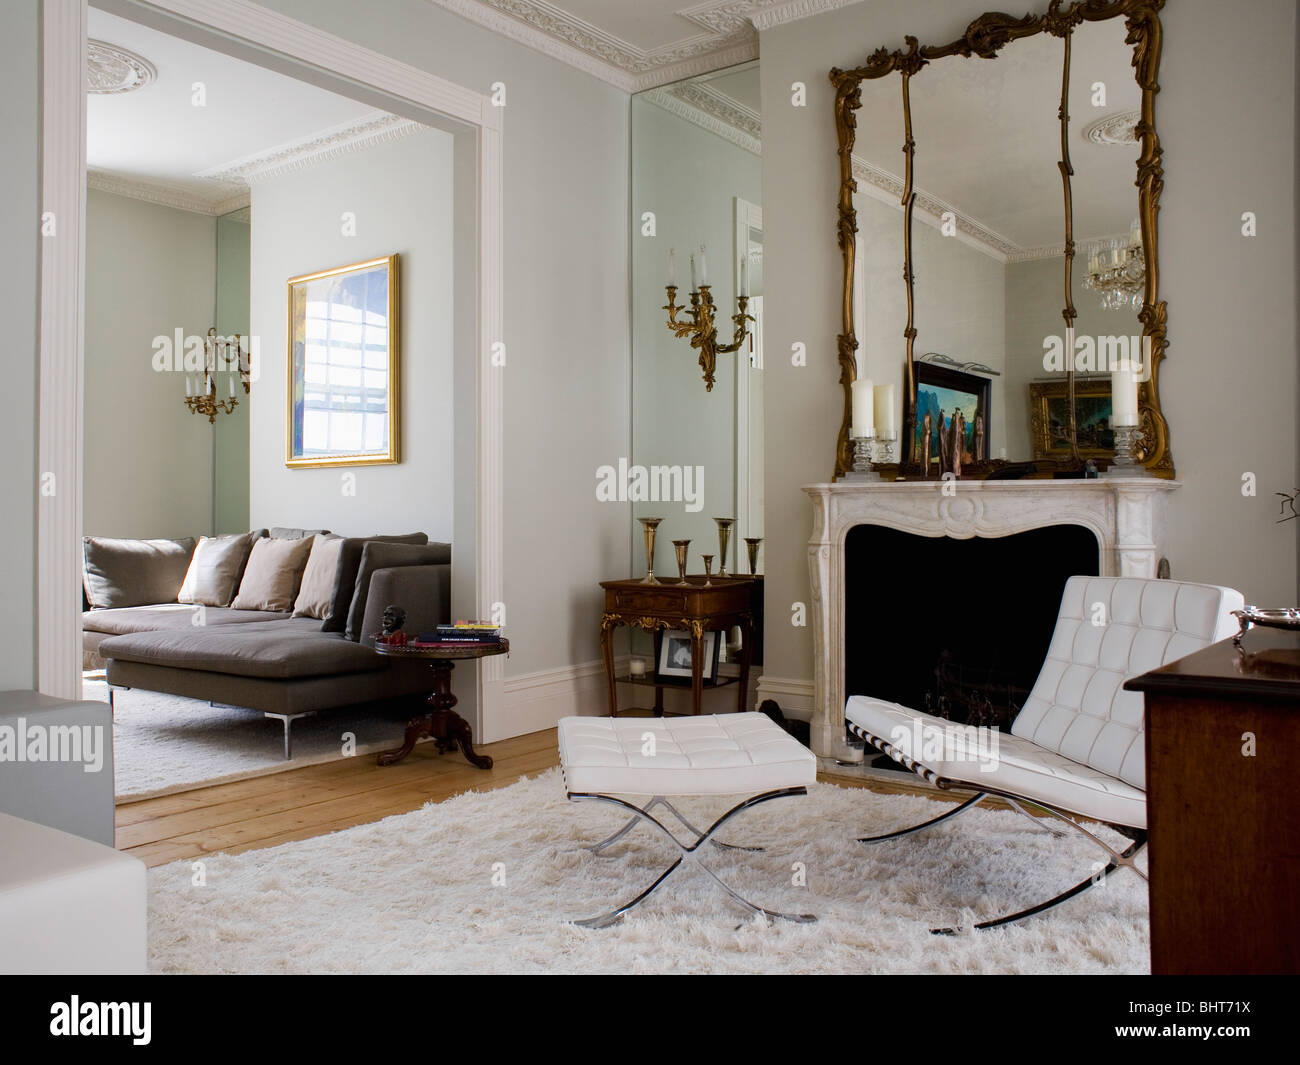 White Leather Mies Van Der Rohe Chair And Stool In Living Room With Stock Pho